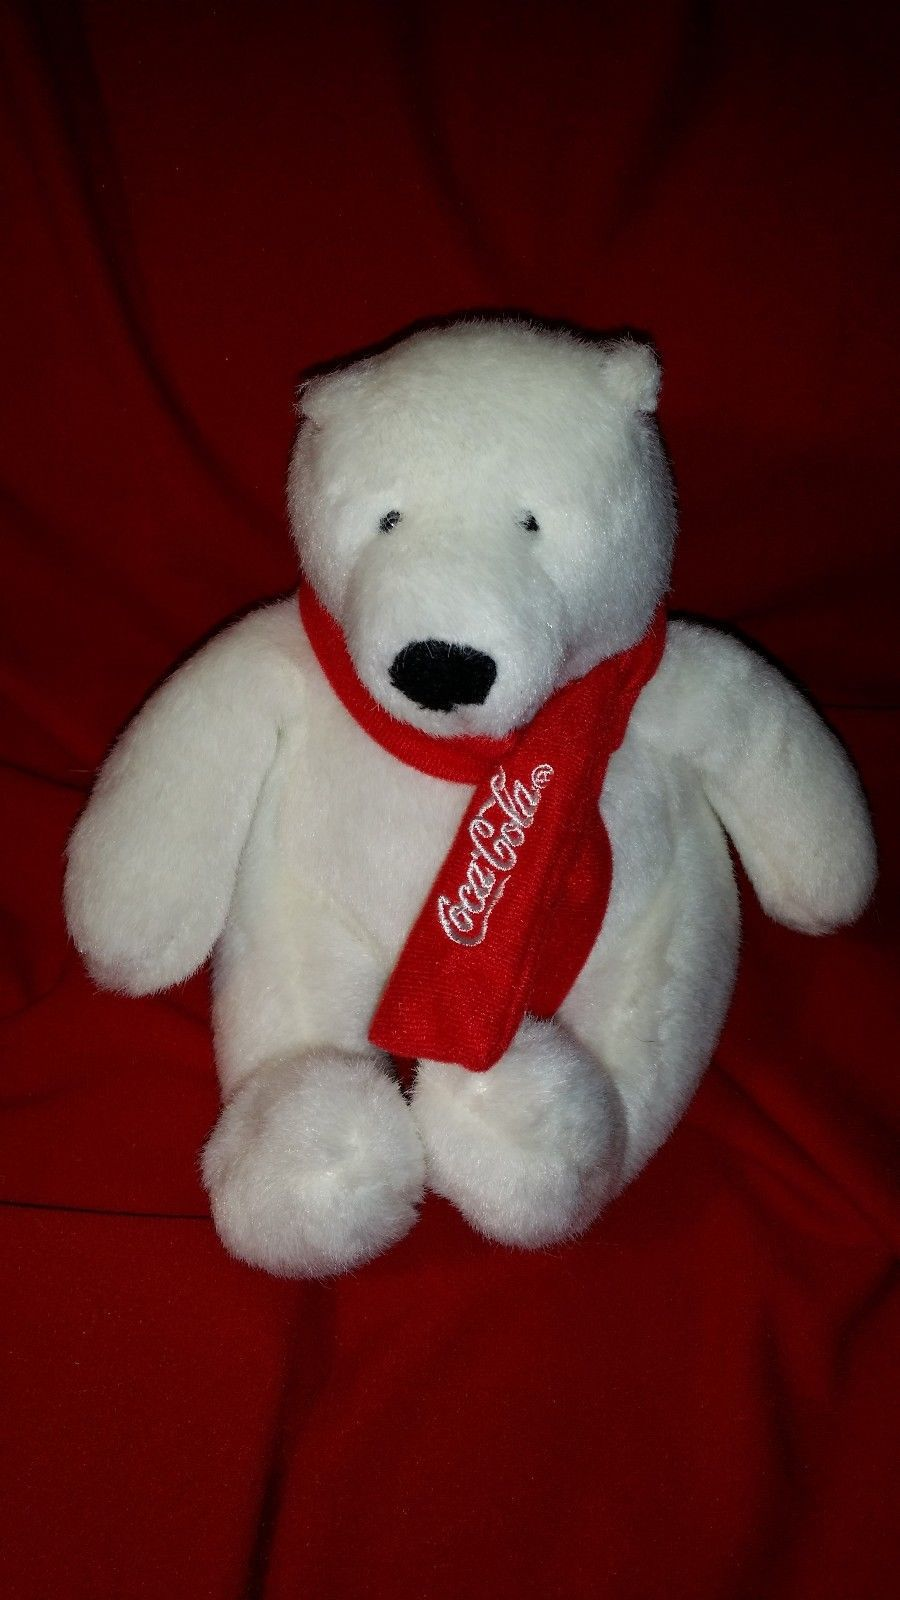 Polar Bear Toys : Lost found coca cola polar bear plush toy stuffed